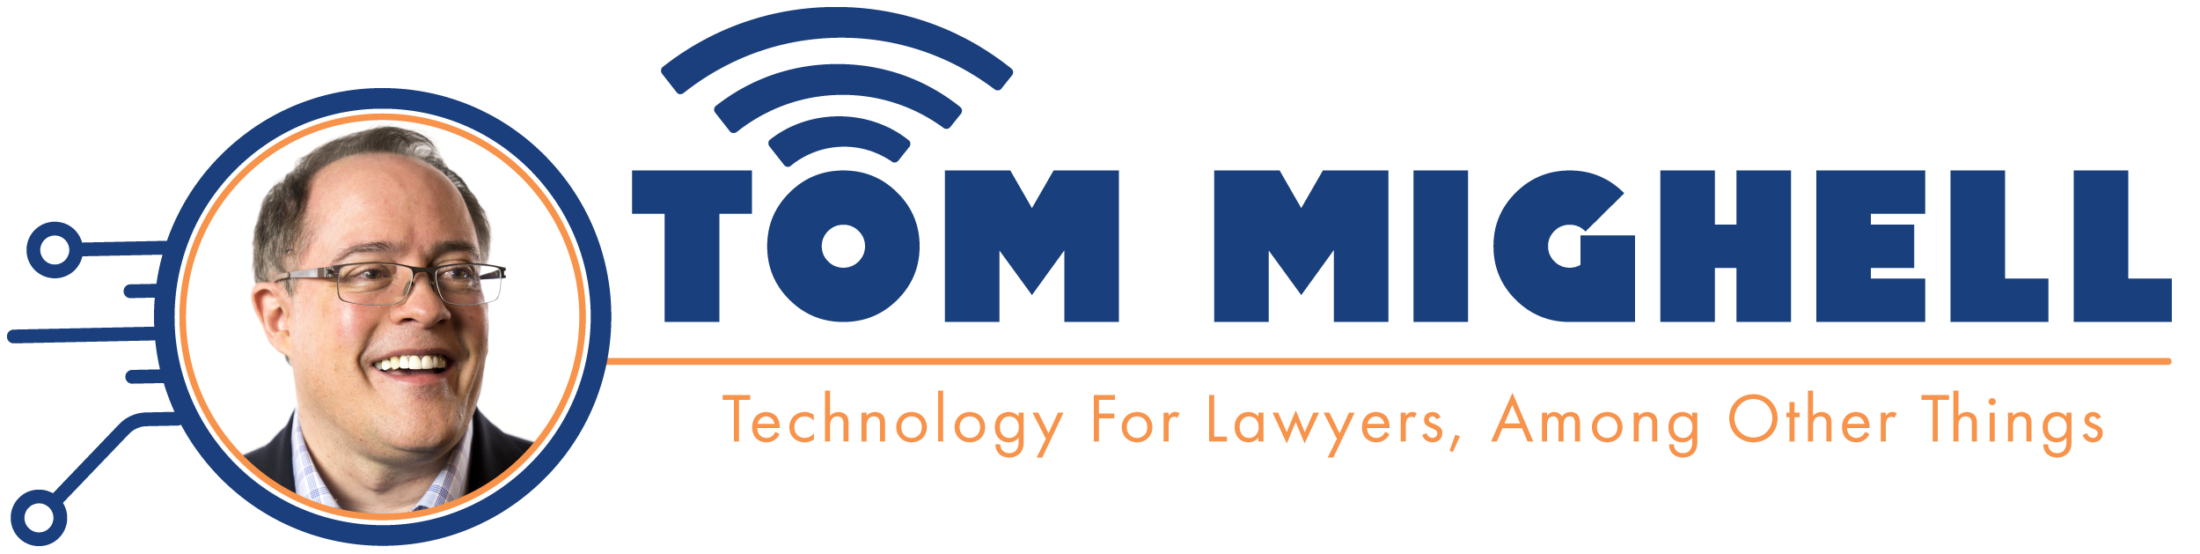 Tom Mighell logo